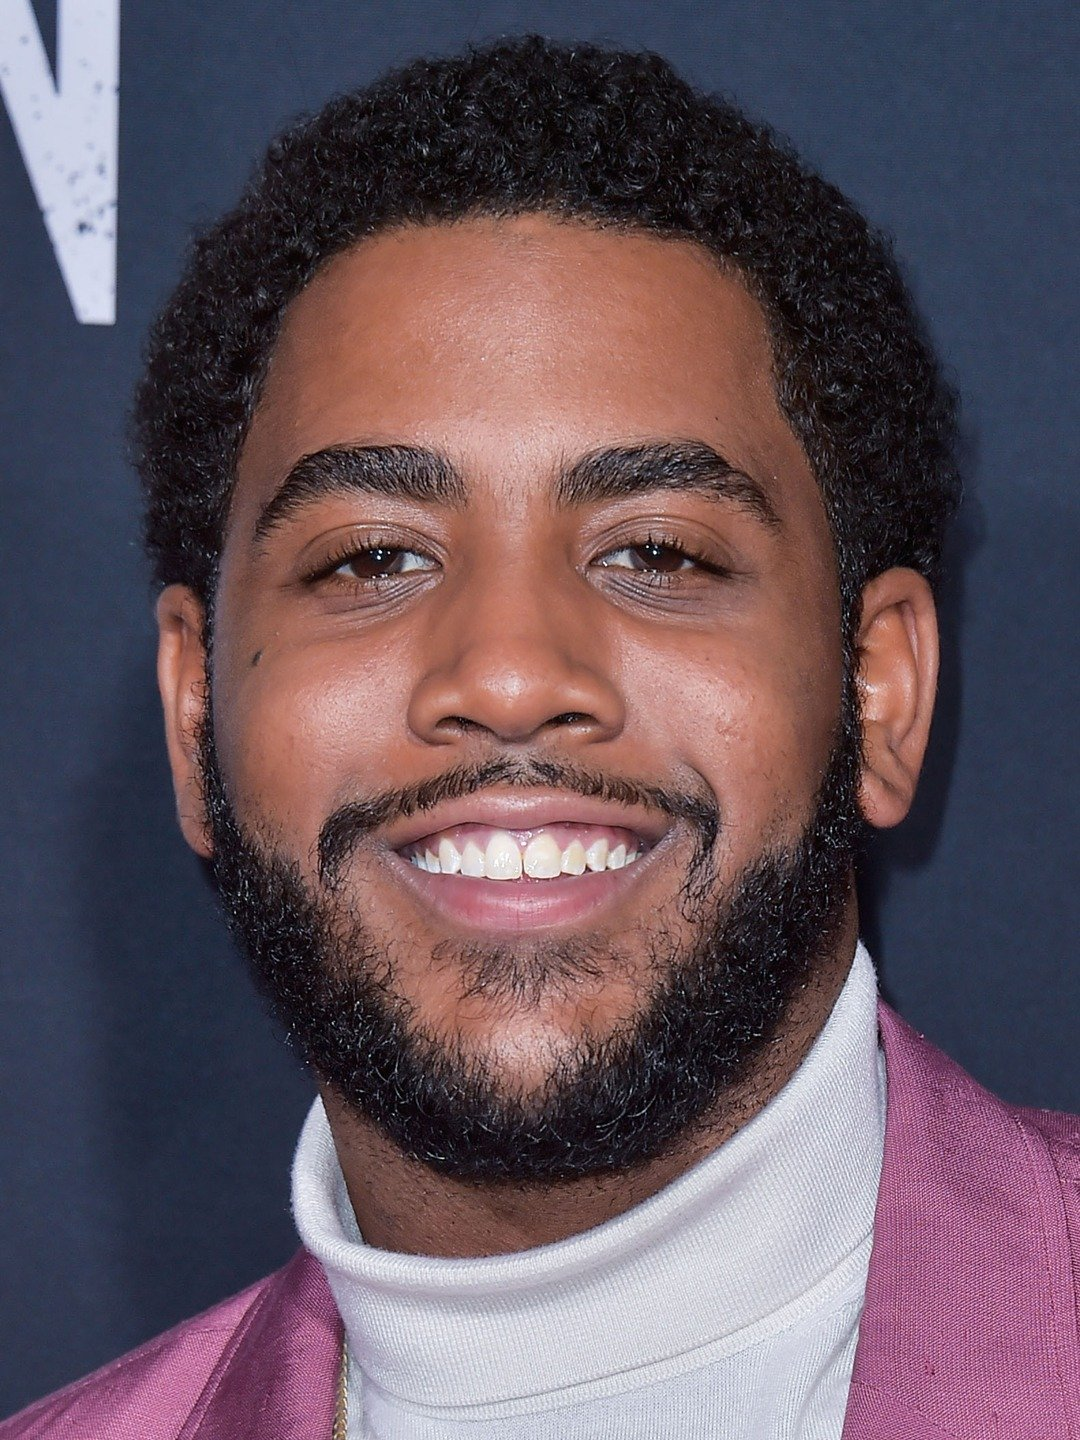 How tall is Jharrel Jerome?